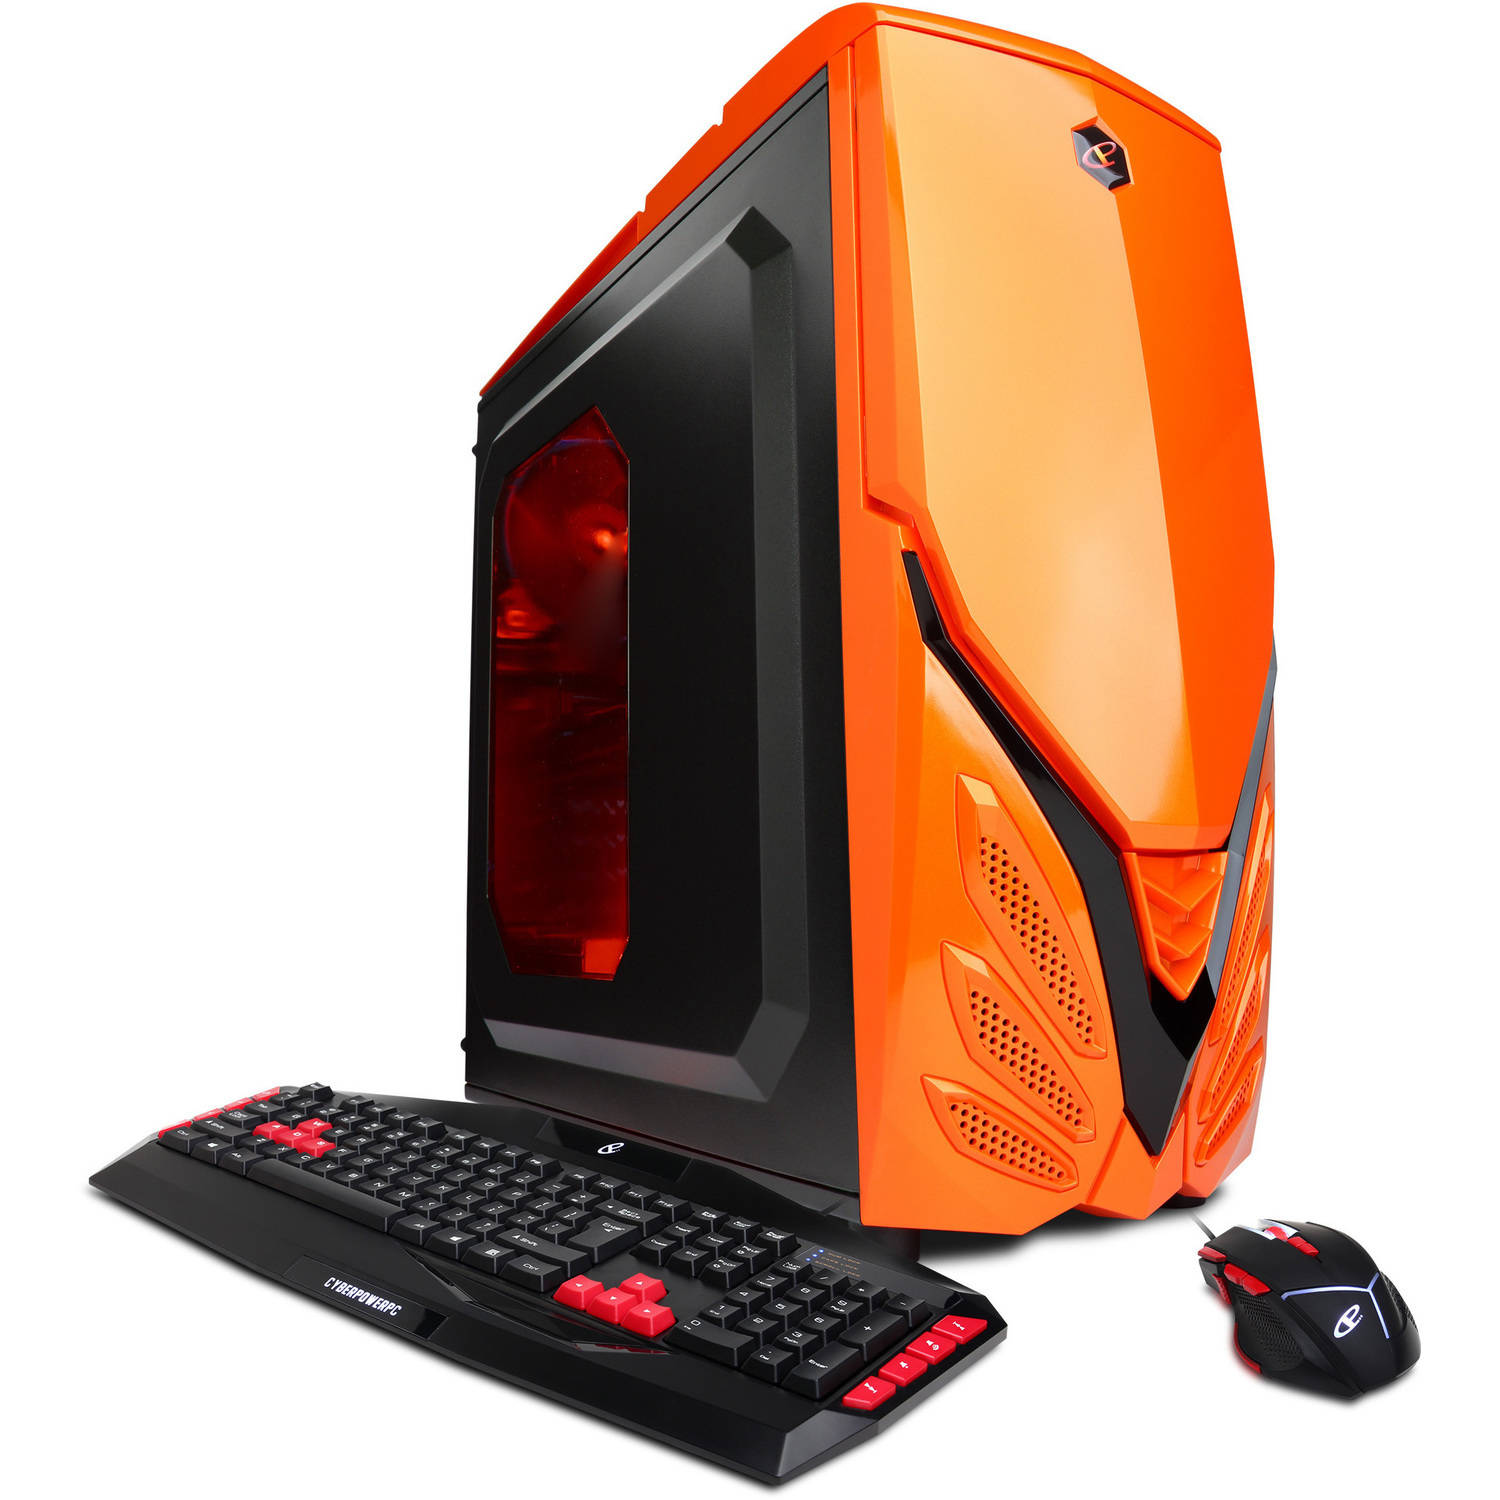 CYBERPOWERPC Orange Gamer Xtreme Gxi850 Gaming Desktop PC with Intel Pentium G4400 Processor, 8GB Memory, 1TB Hard Drive and Windows 10 Home (Monitor Not Included)